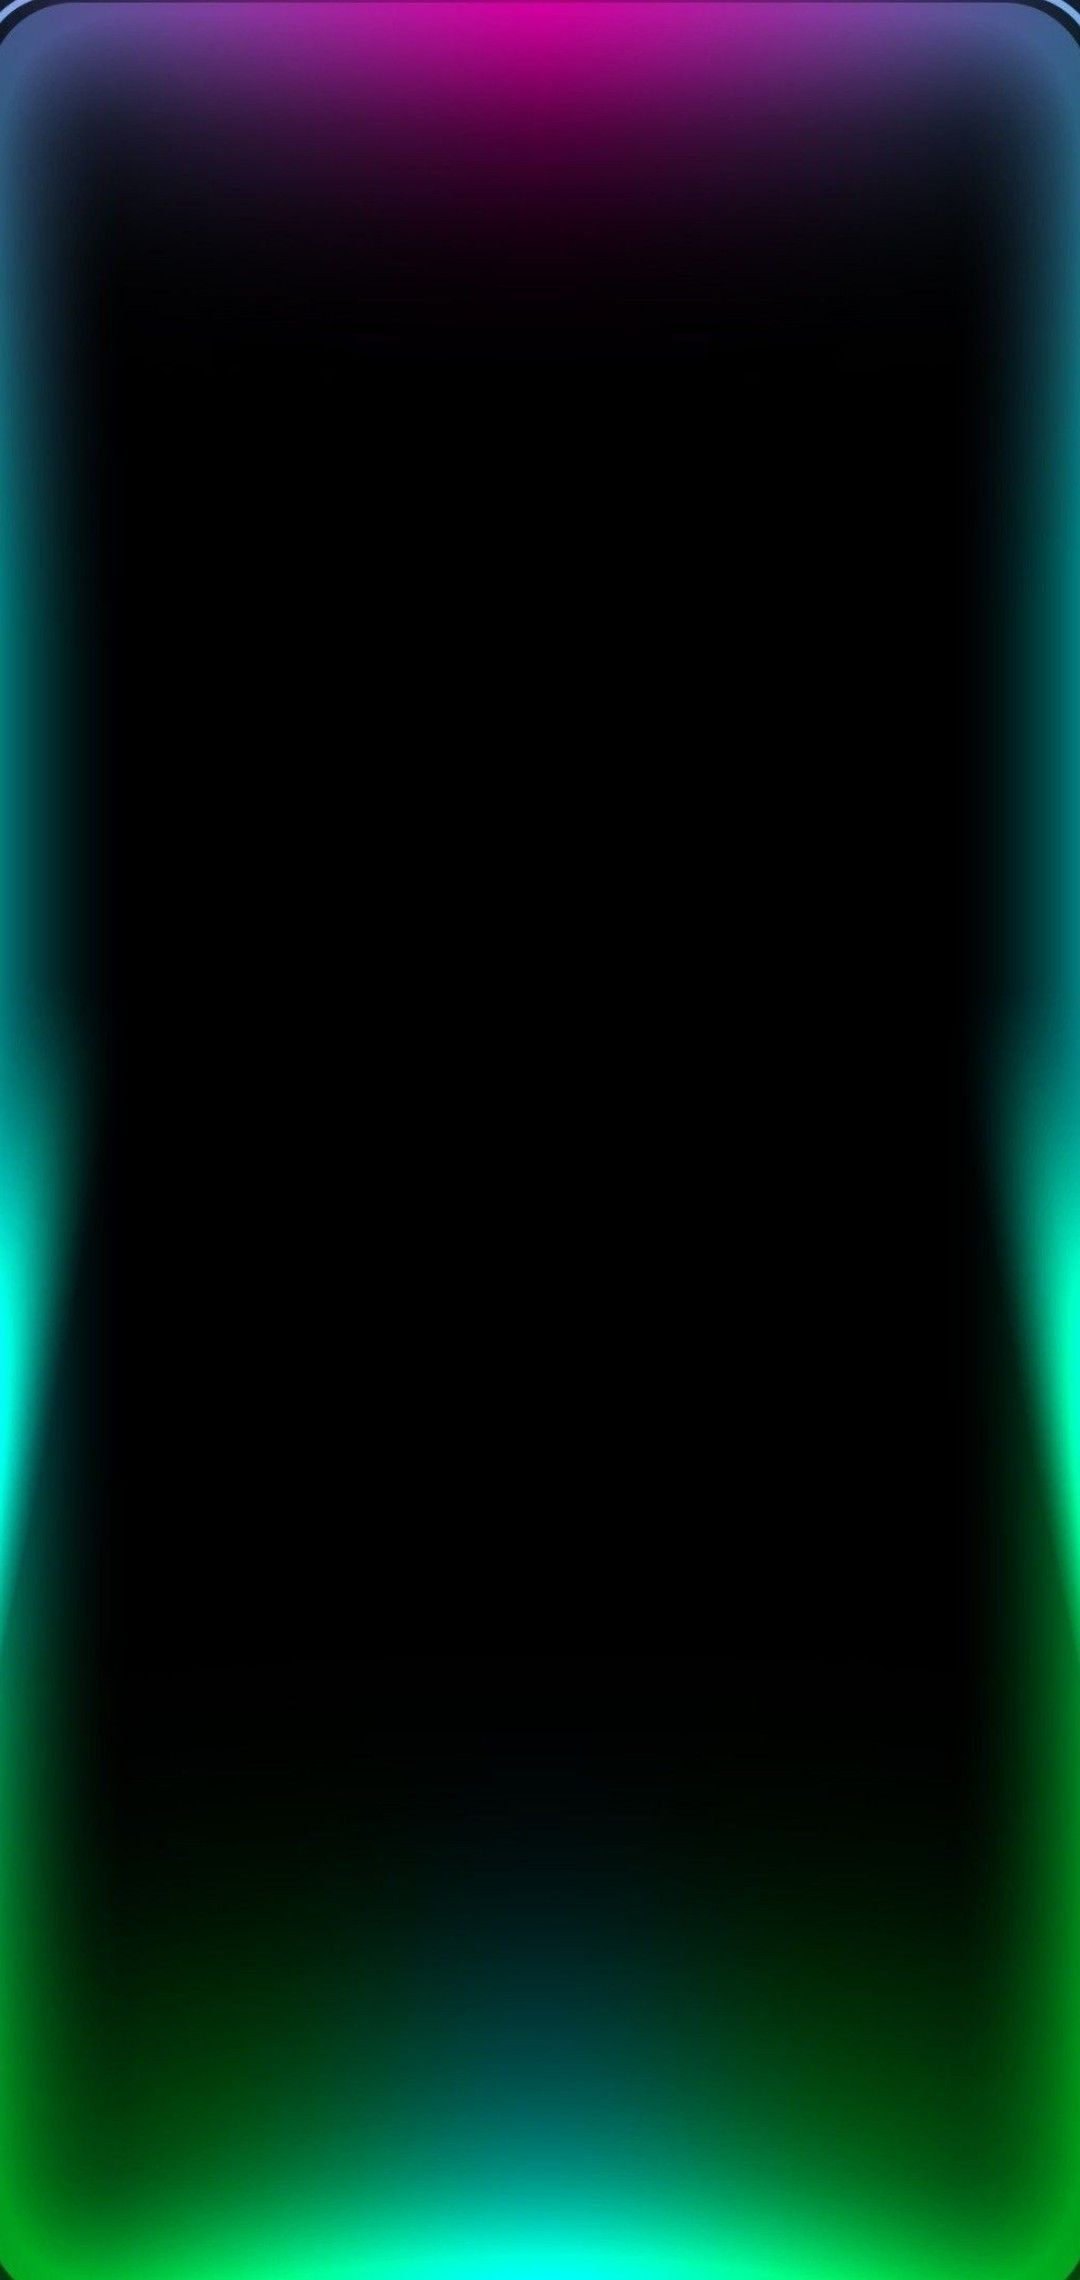 Rainbow Border Wallpaper : rainbow, border, wallpaper, Frame, Border, Rainbow, Light, 1080x2280, Wallpaper, Abstract, Iphone, Wallpaper,, Phone, Patterns,